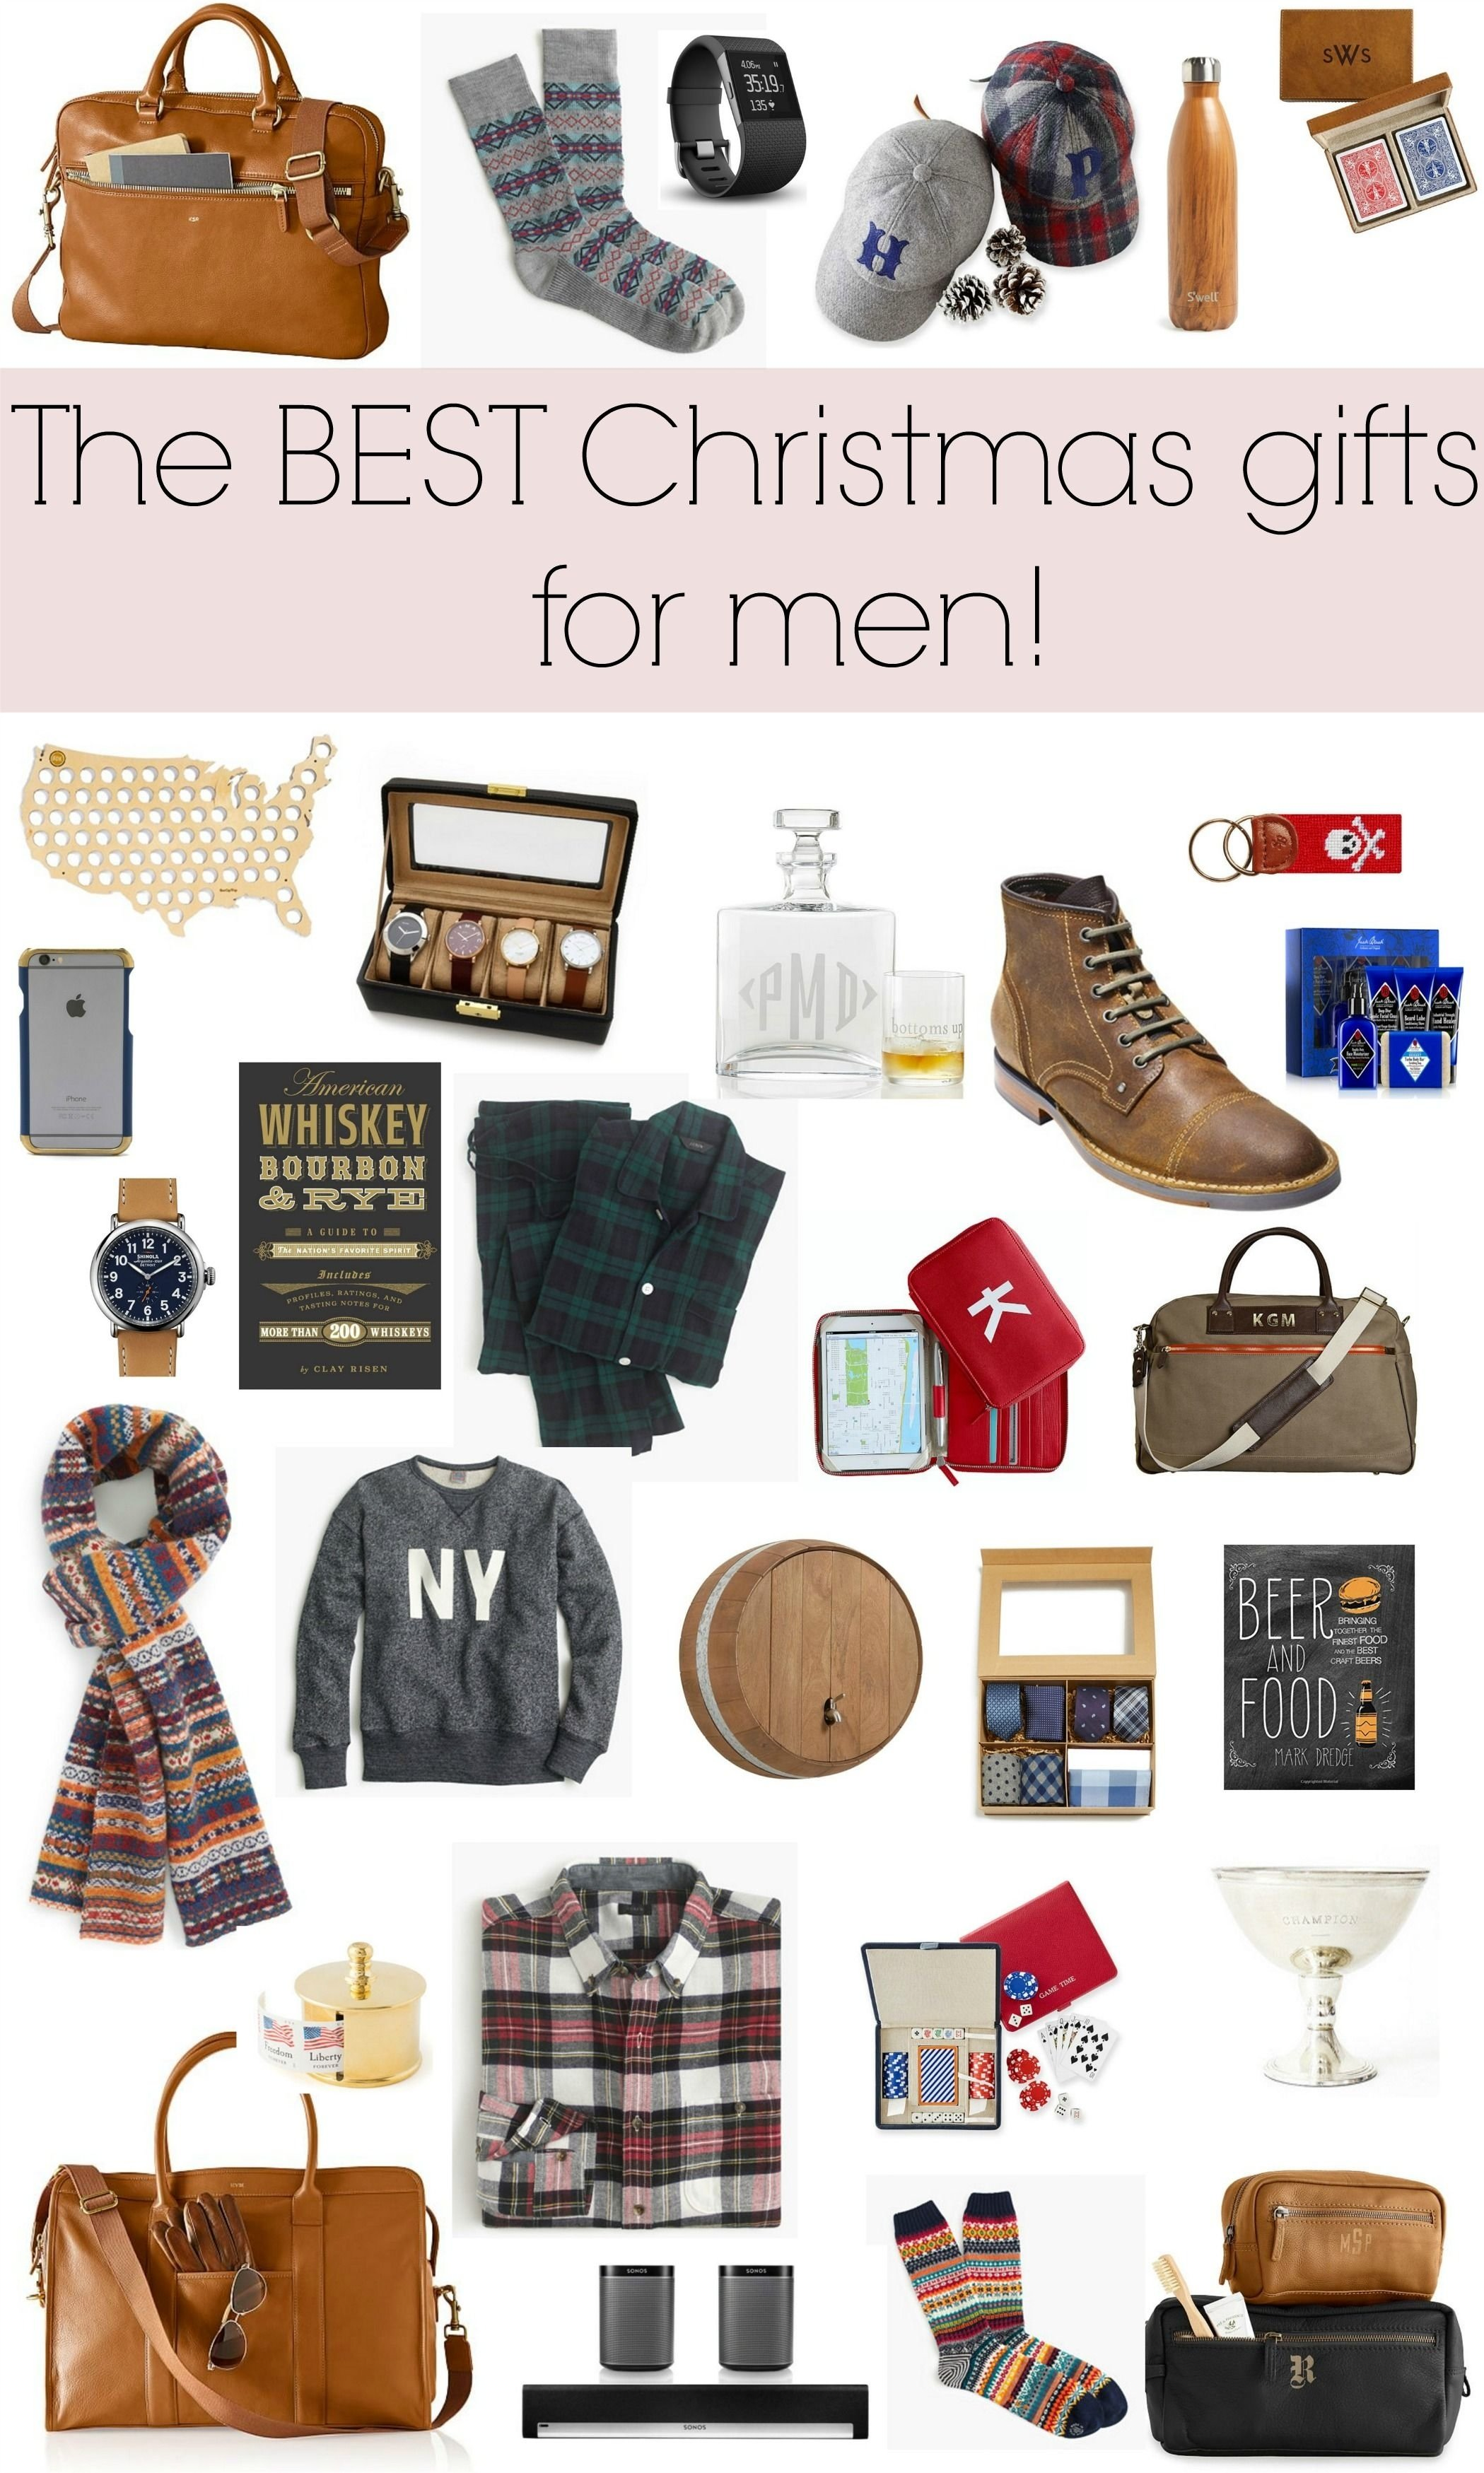 10 Awesome Holiday Gift Ideas For Men the best gifts for men holiday gift guide gingham and christmas gifts 1 2020